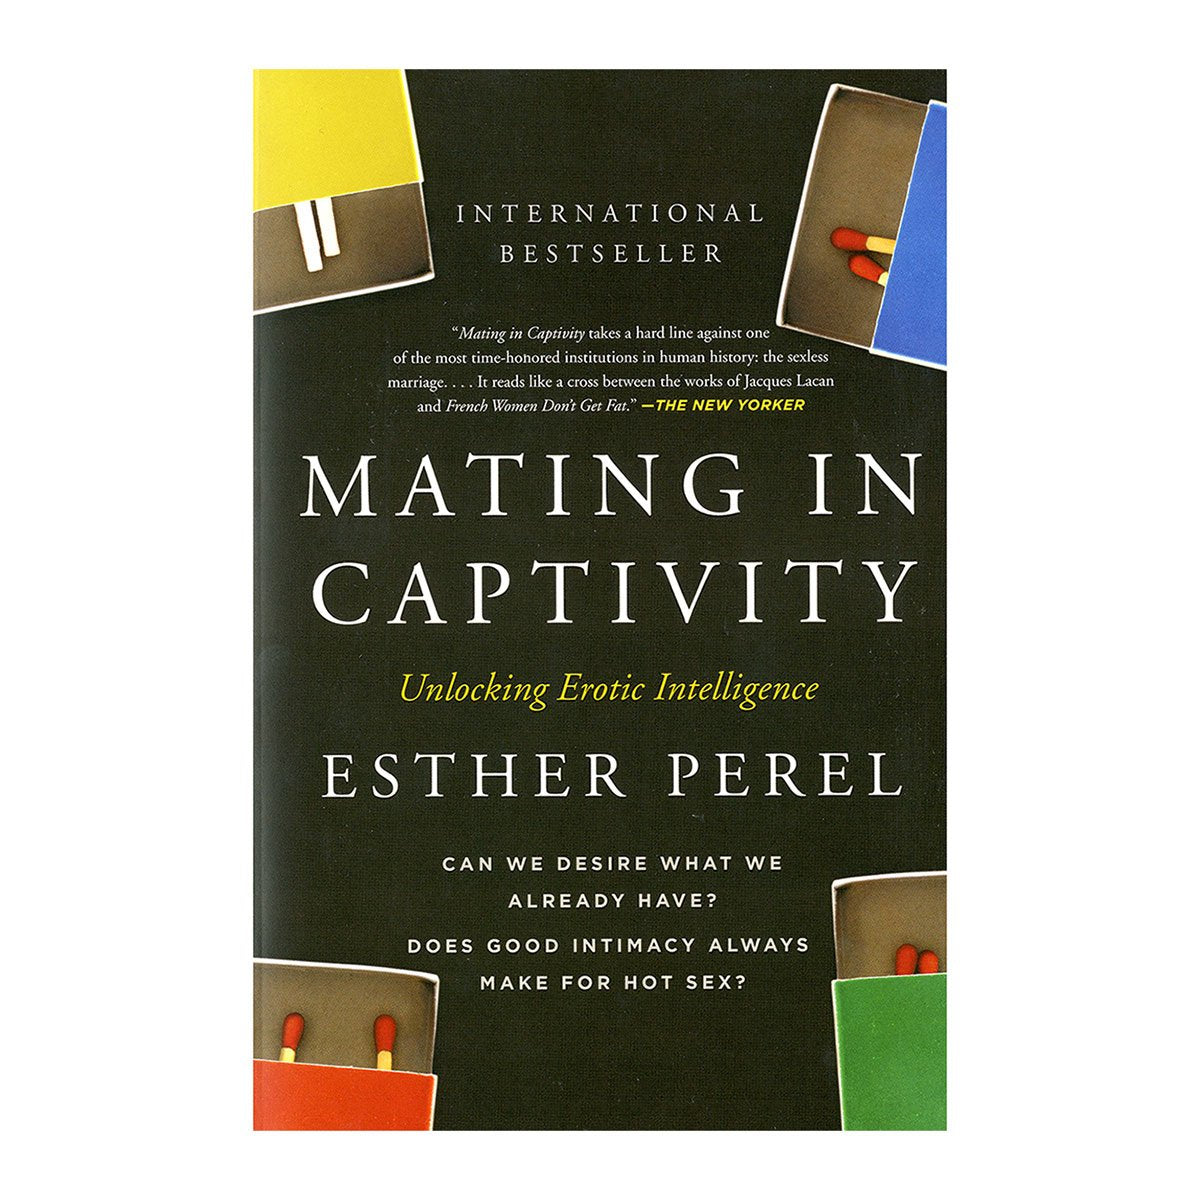 Mating in Captivity: Reconciling the Erotic & the Domestic - Unlocking Erotic Intelligence - Harper Collins